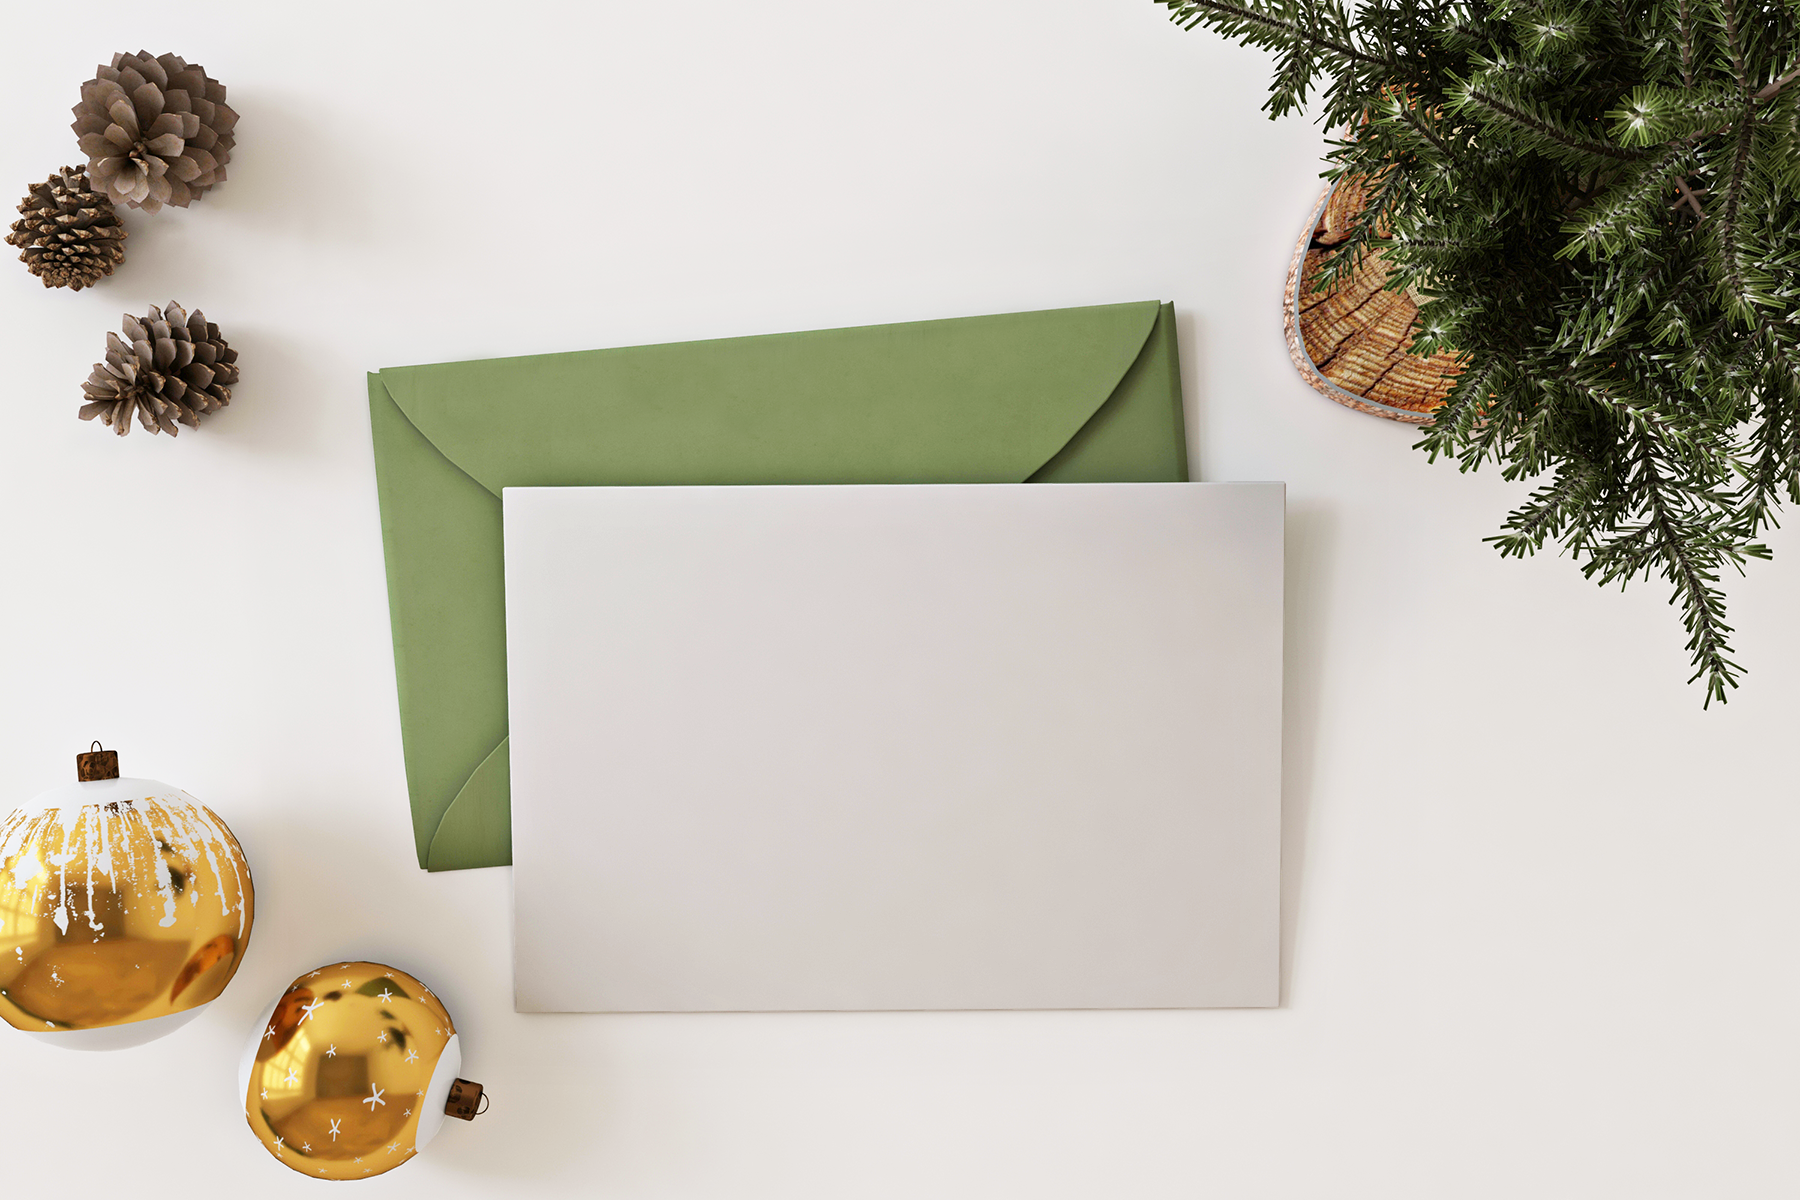 Free Christmas Card with Envelope Mockup